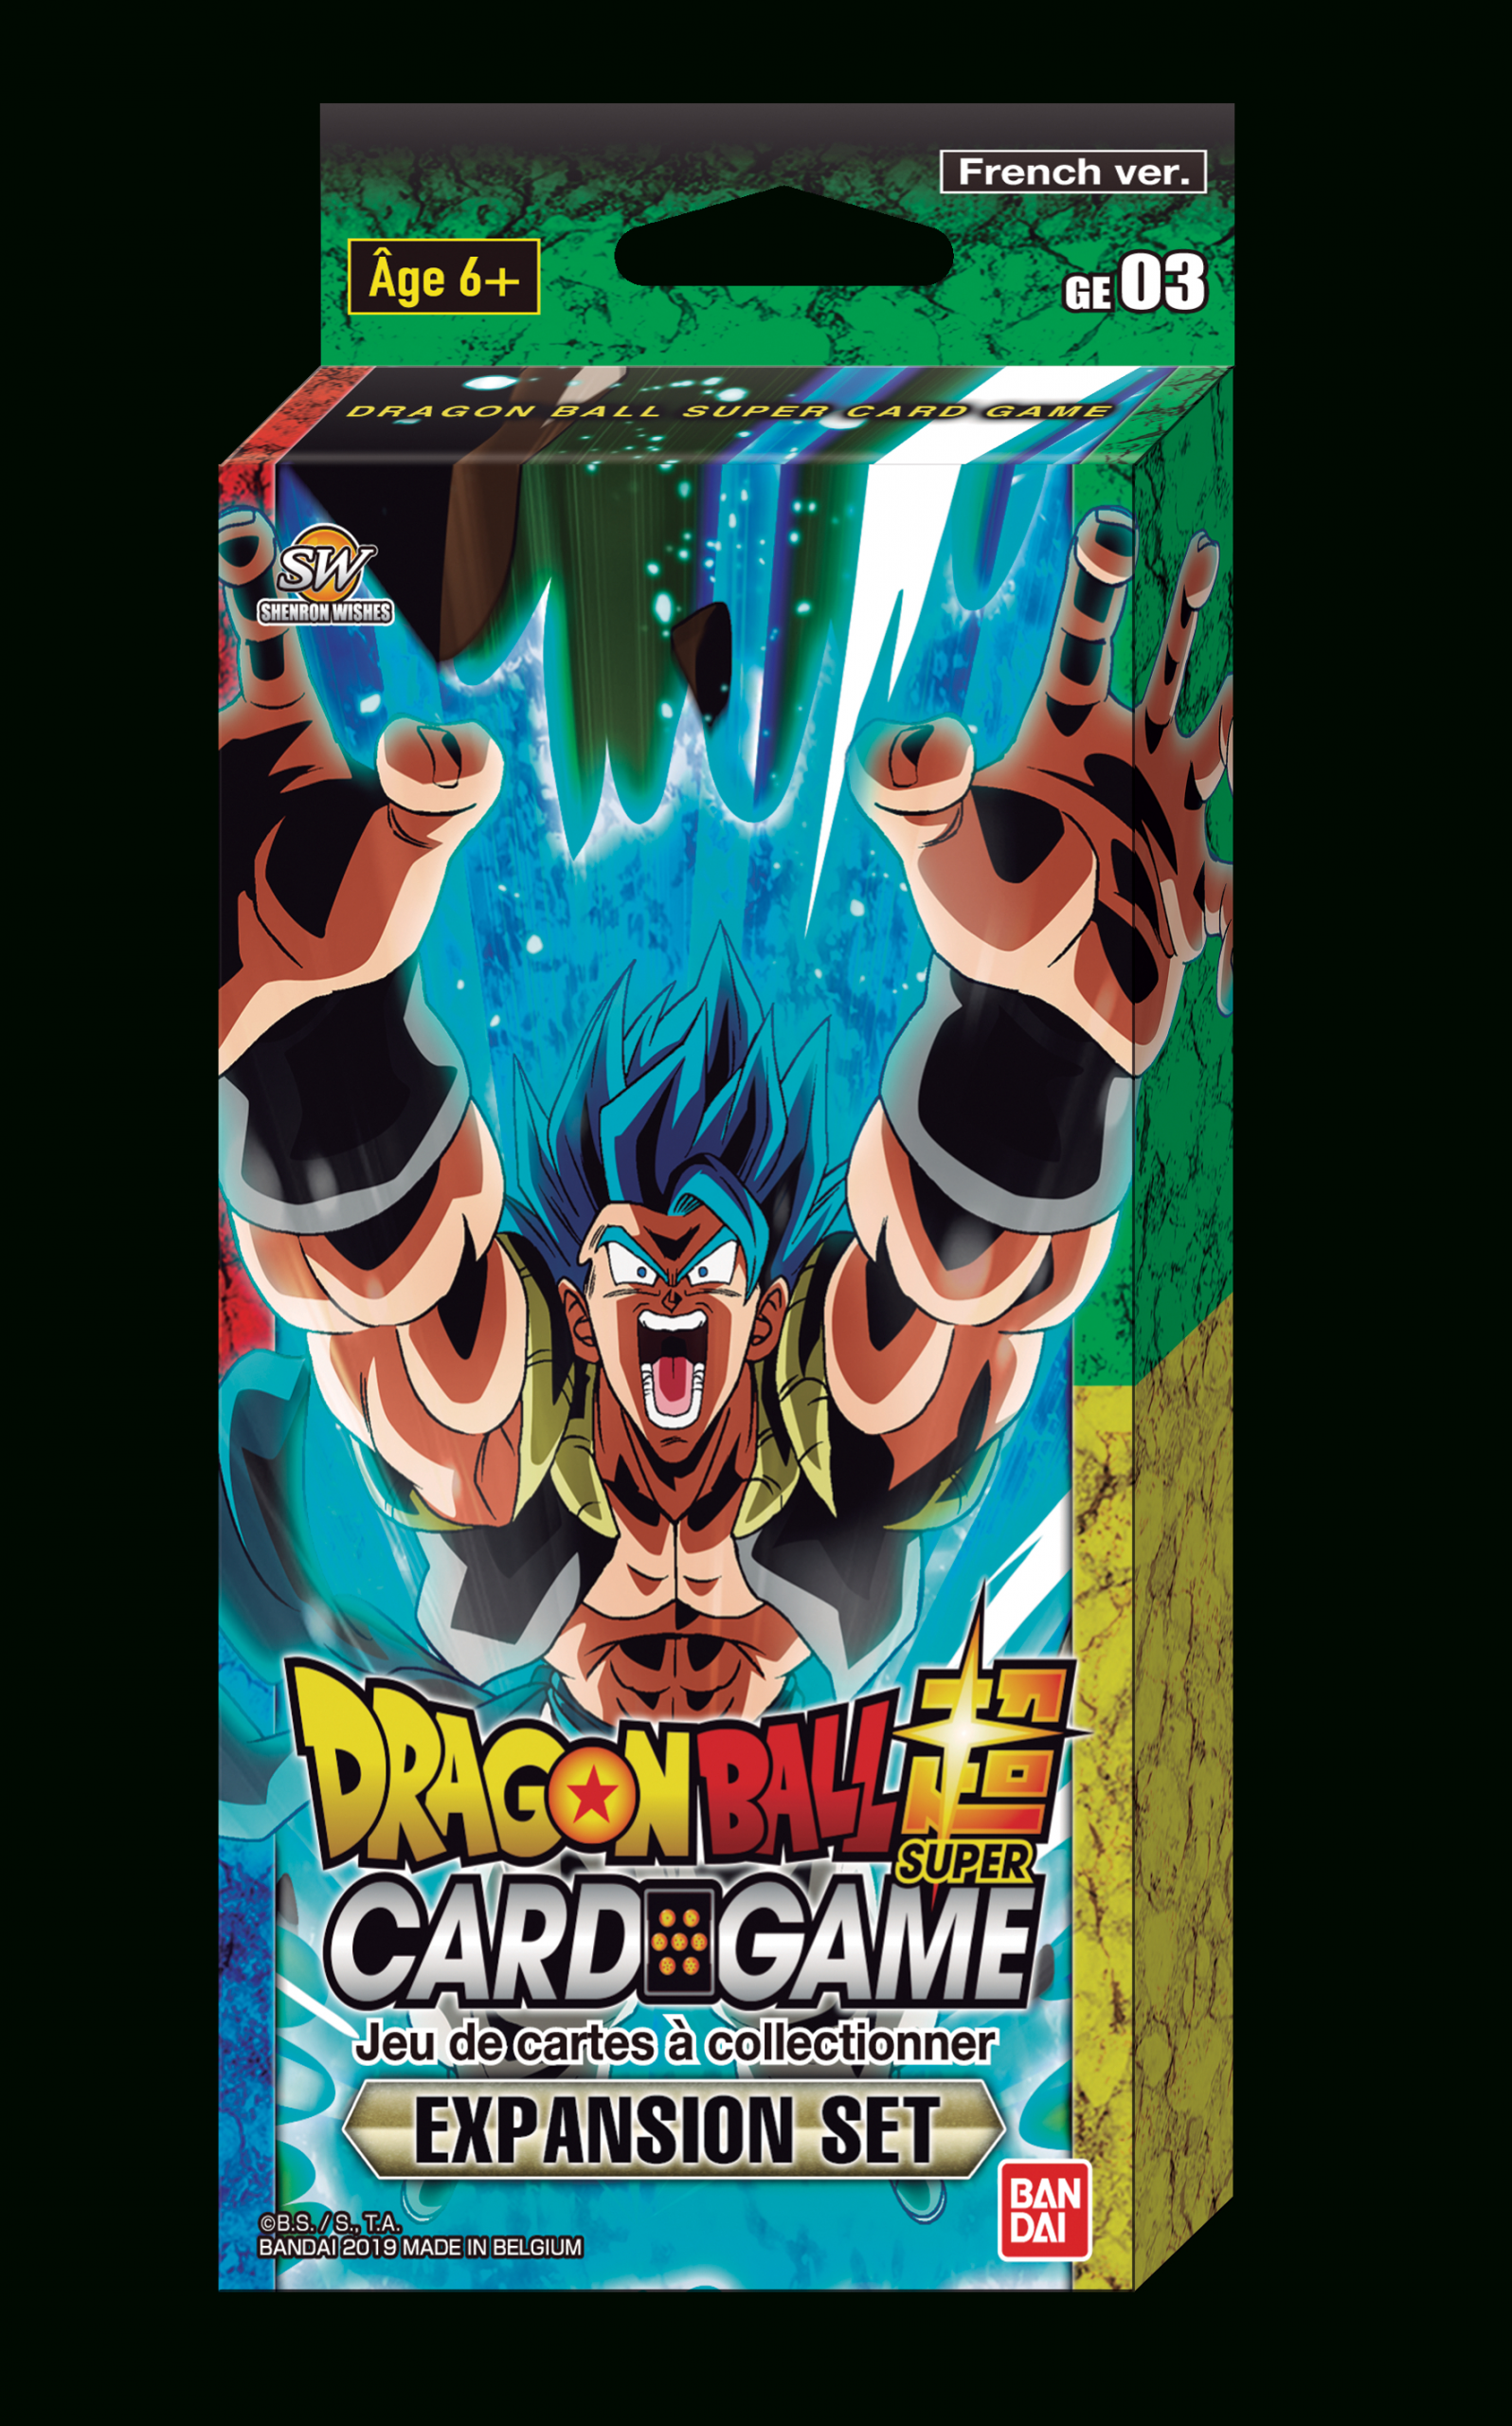 Dragon Ball: Protege Carte Dragon Ball Super Card Game avec Carte De Fra